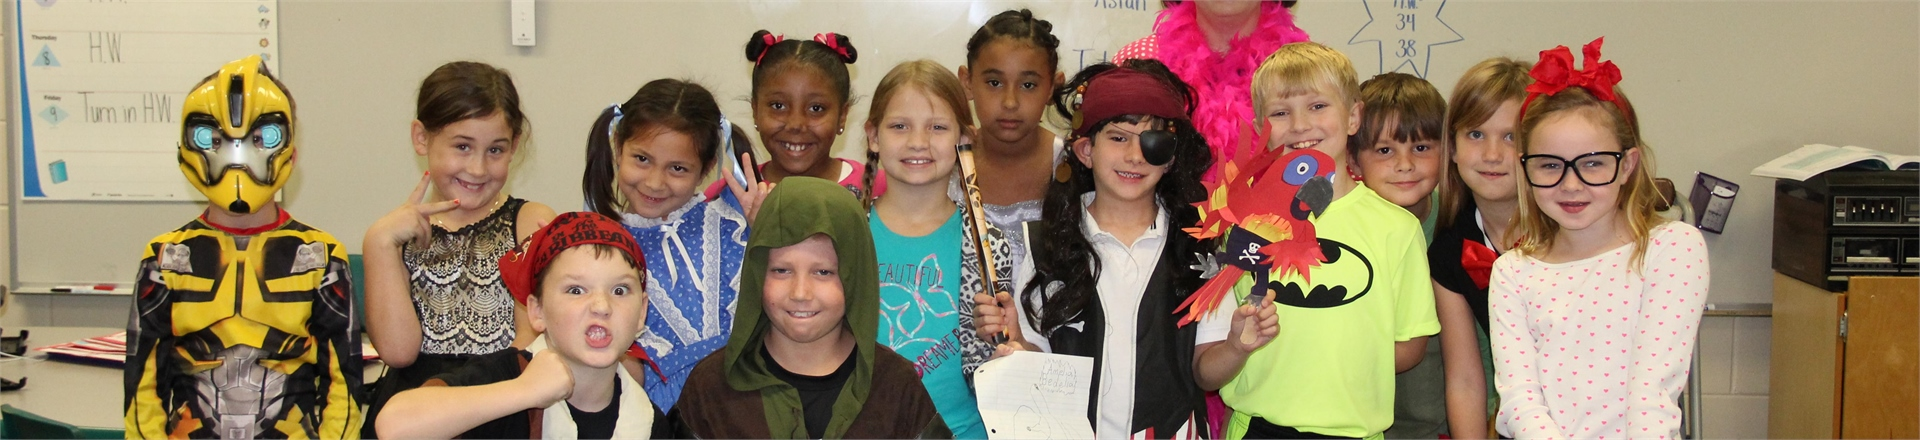 Little Lambs have RAMS Spirit! - Character Day